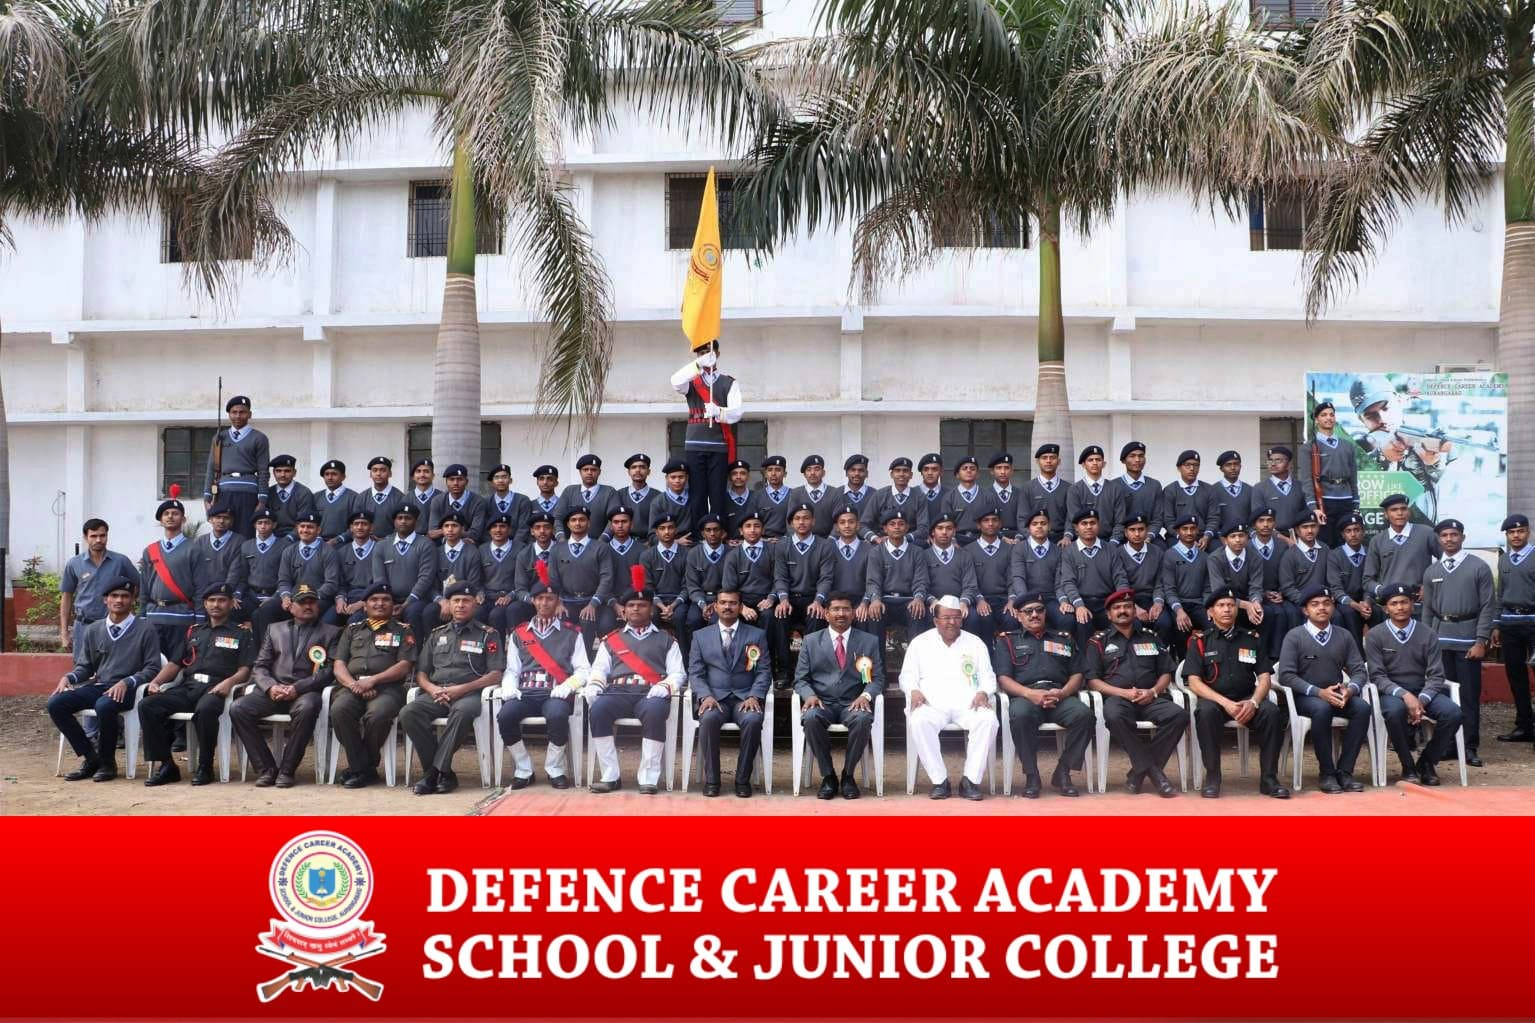 caree- for-combined-defence-services-defence-career-academy-aurangabad